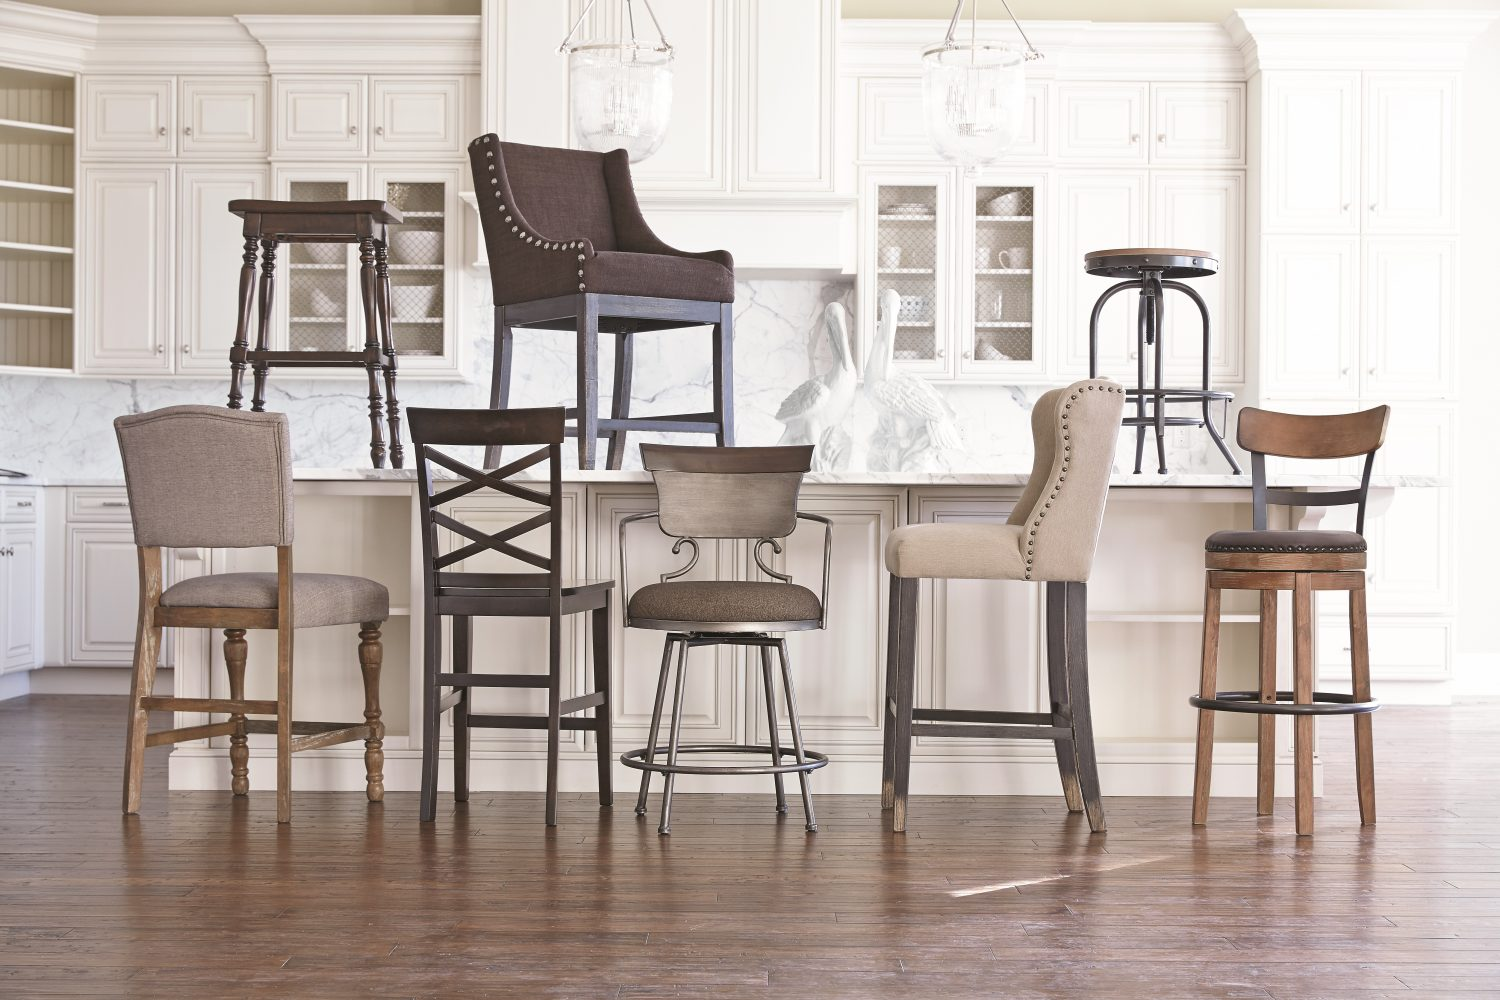 10 Dining Chairs Bar Stools To Refresh Your Home Ashley Homestore